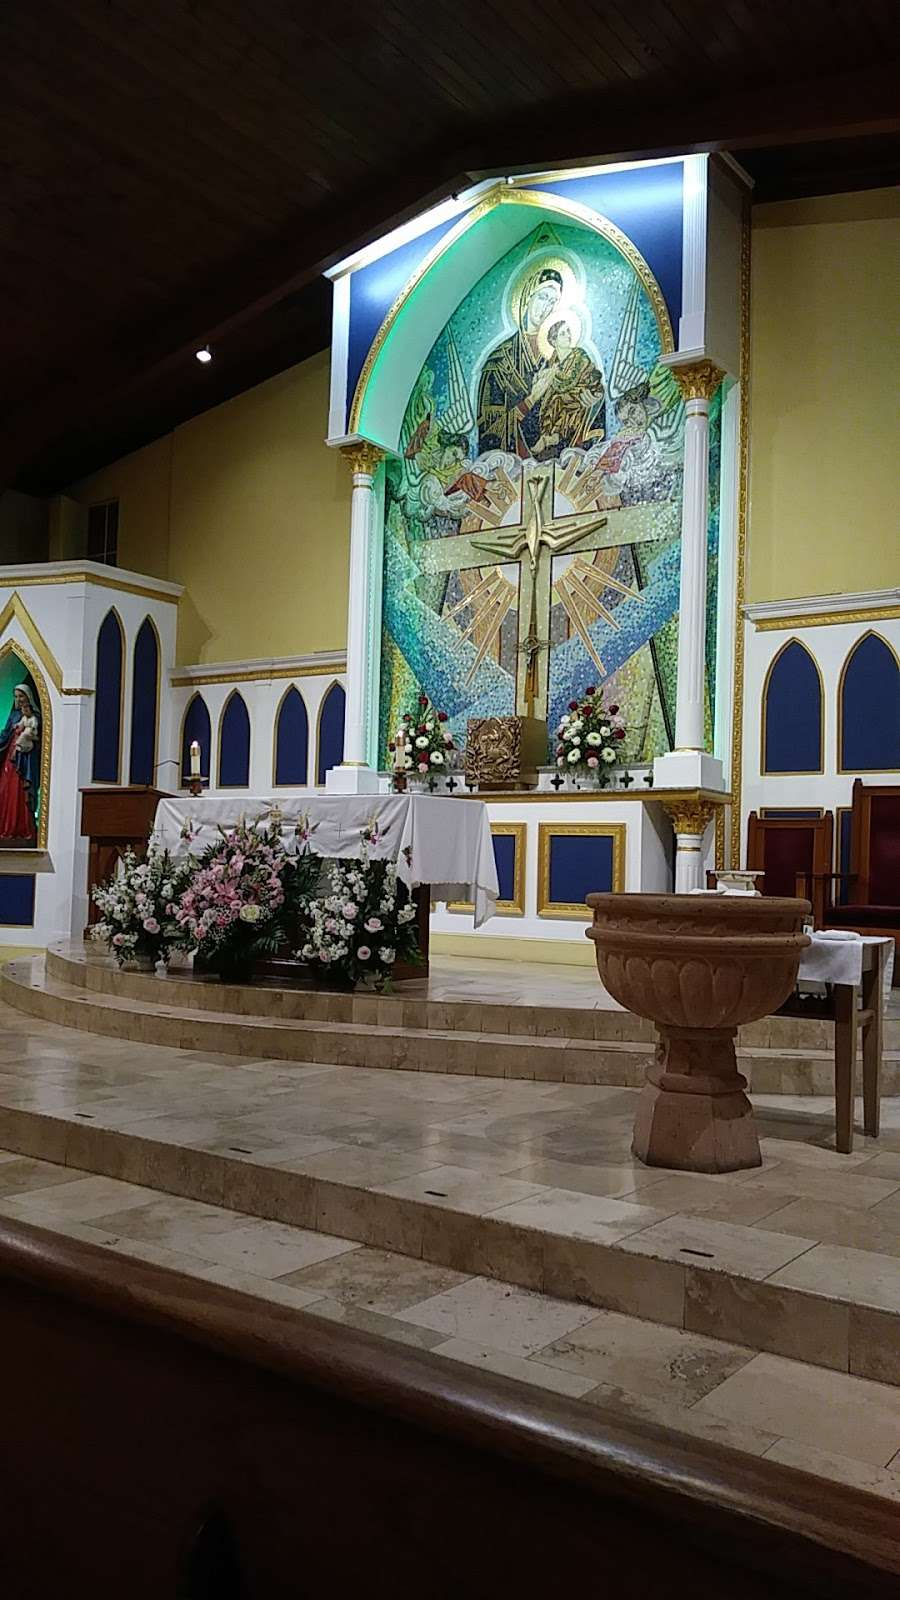 Our Lady of Perpetual Help Parish - church  | Photo 5 of 10 | Address: 7617 Cortland Ave, Dallas, TX 75235, USA | Phone: (214) 352-6012